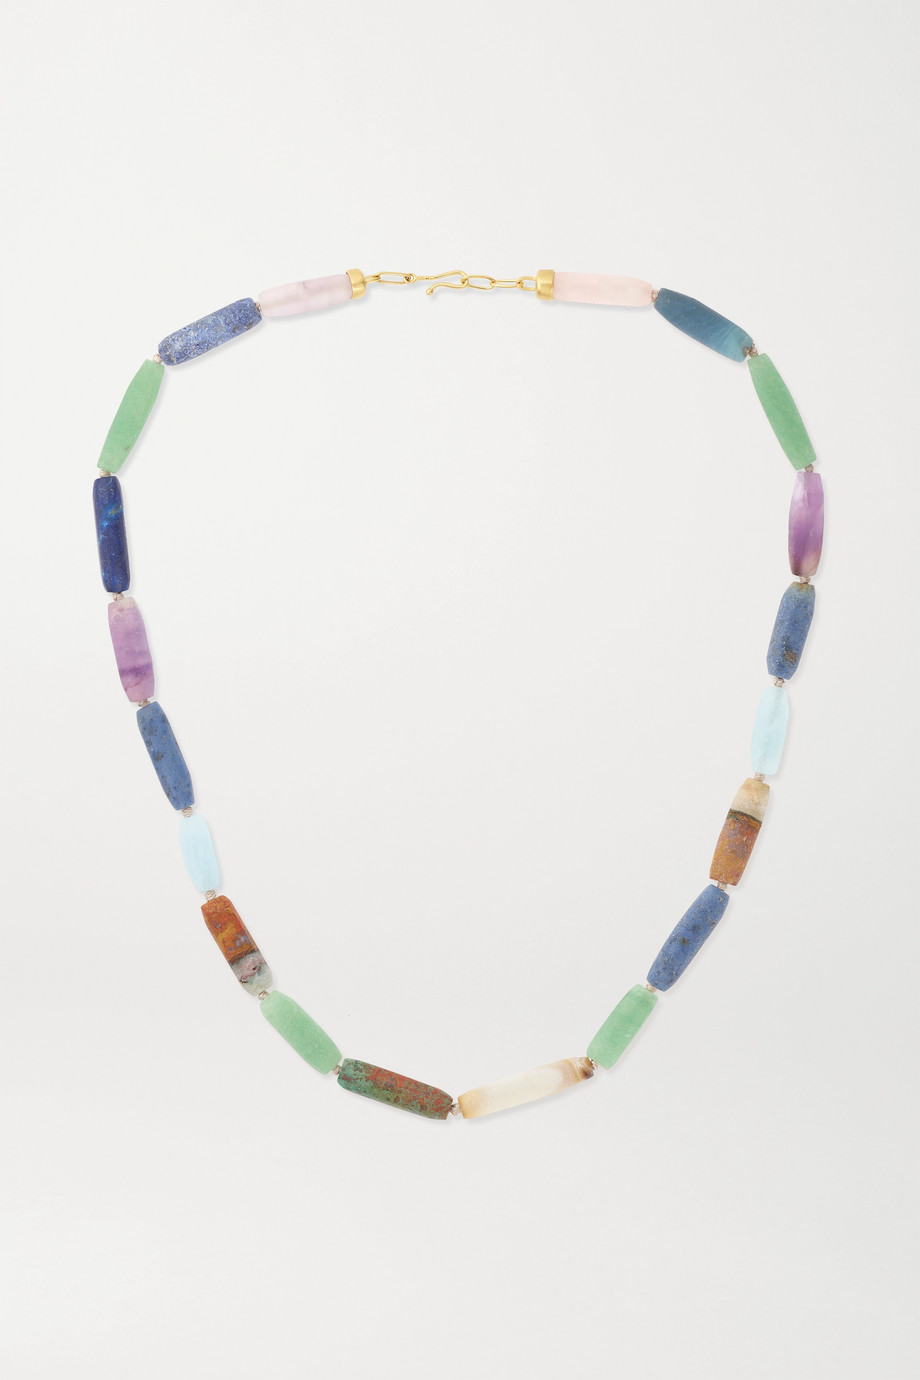 Brooke Gregson 14-karat gold multi-stone necklace